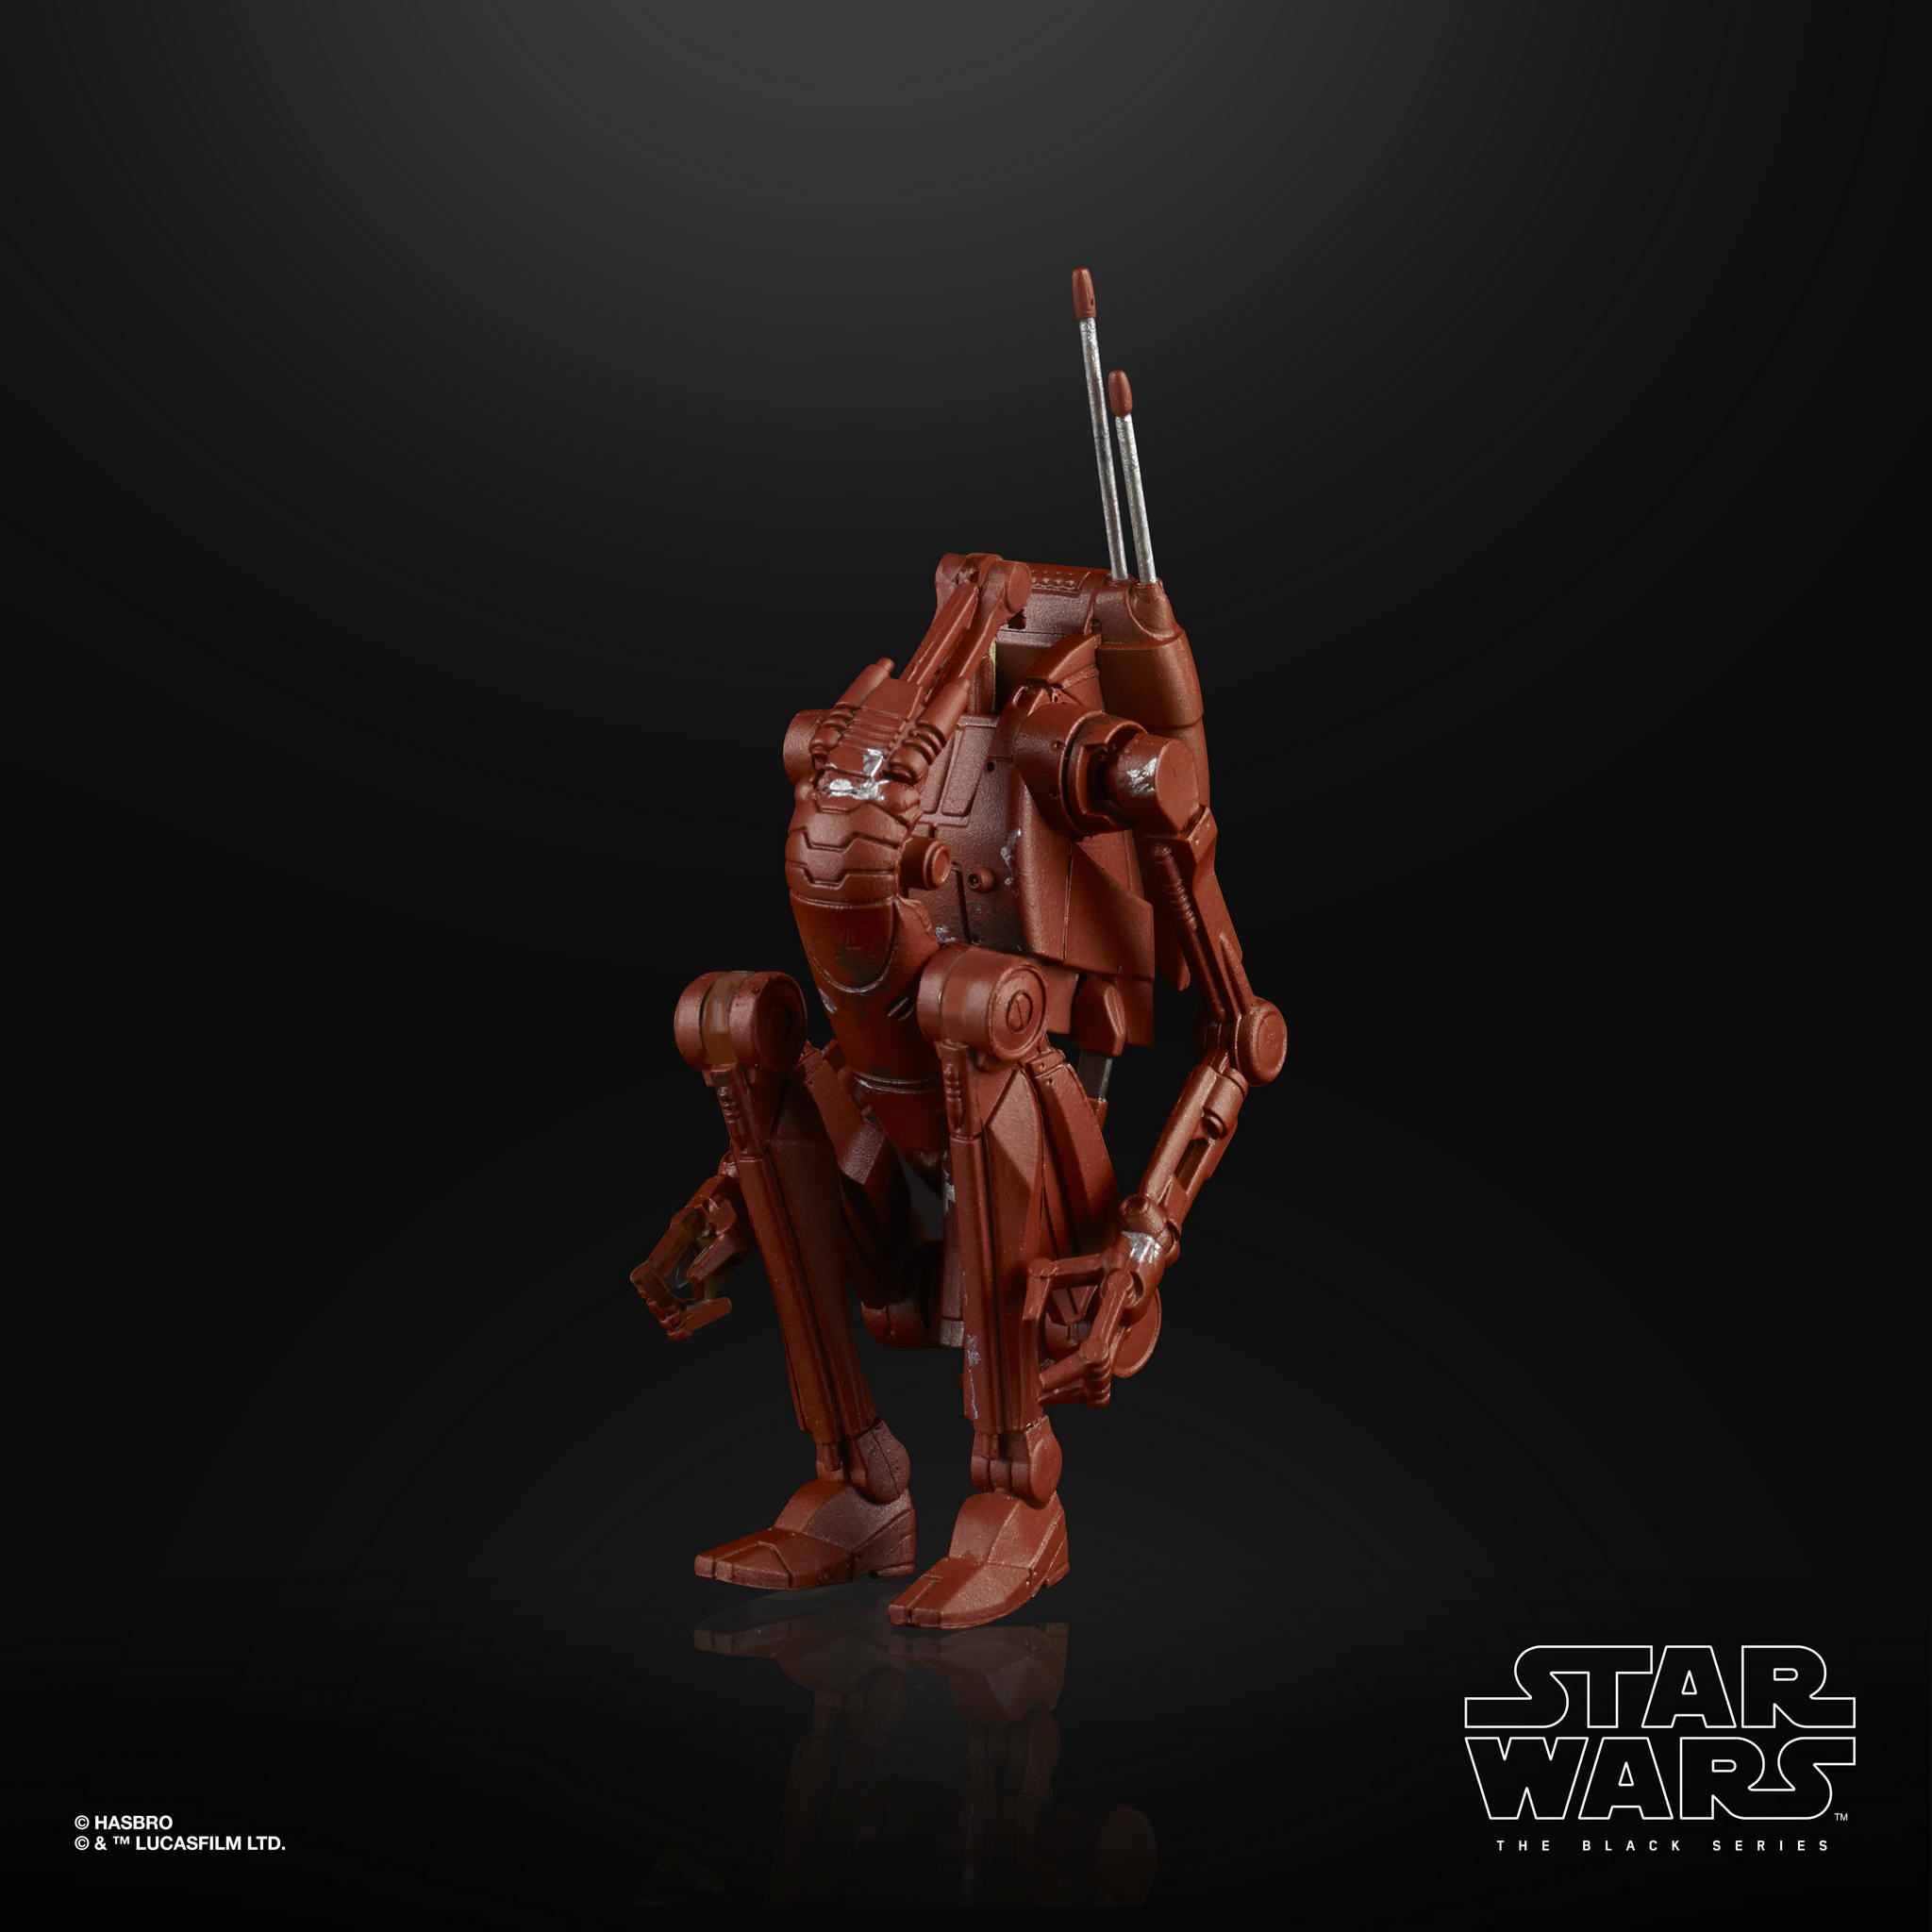 STAR WARS THE BLACK SERIES 6 INCH BATTLE DROID Figure 3